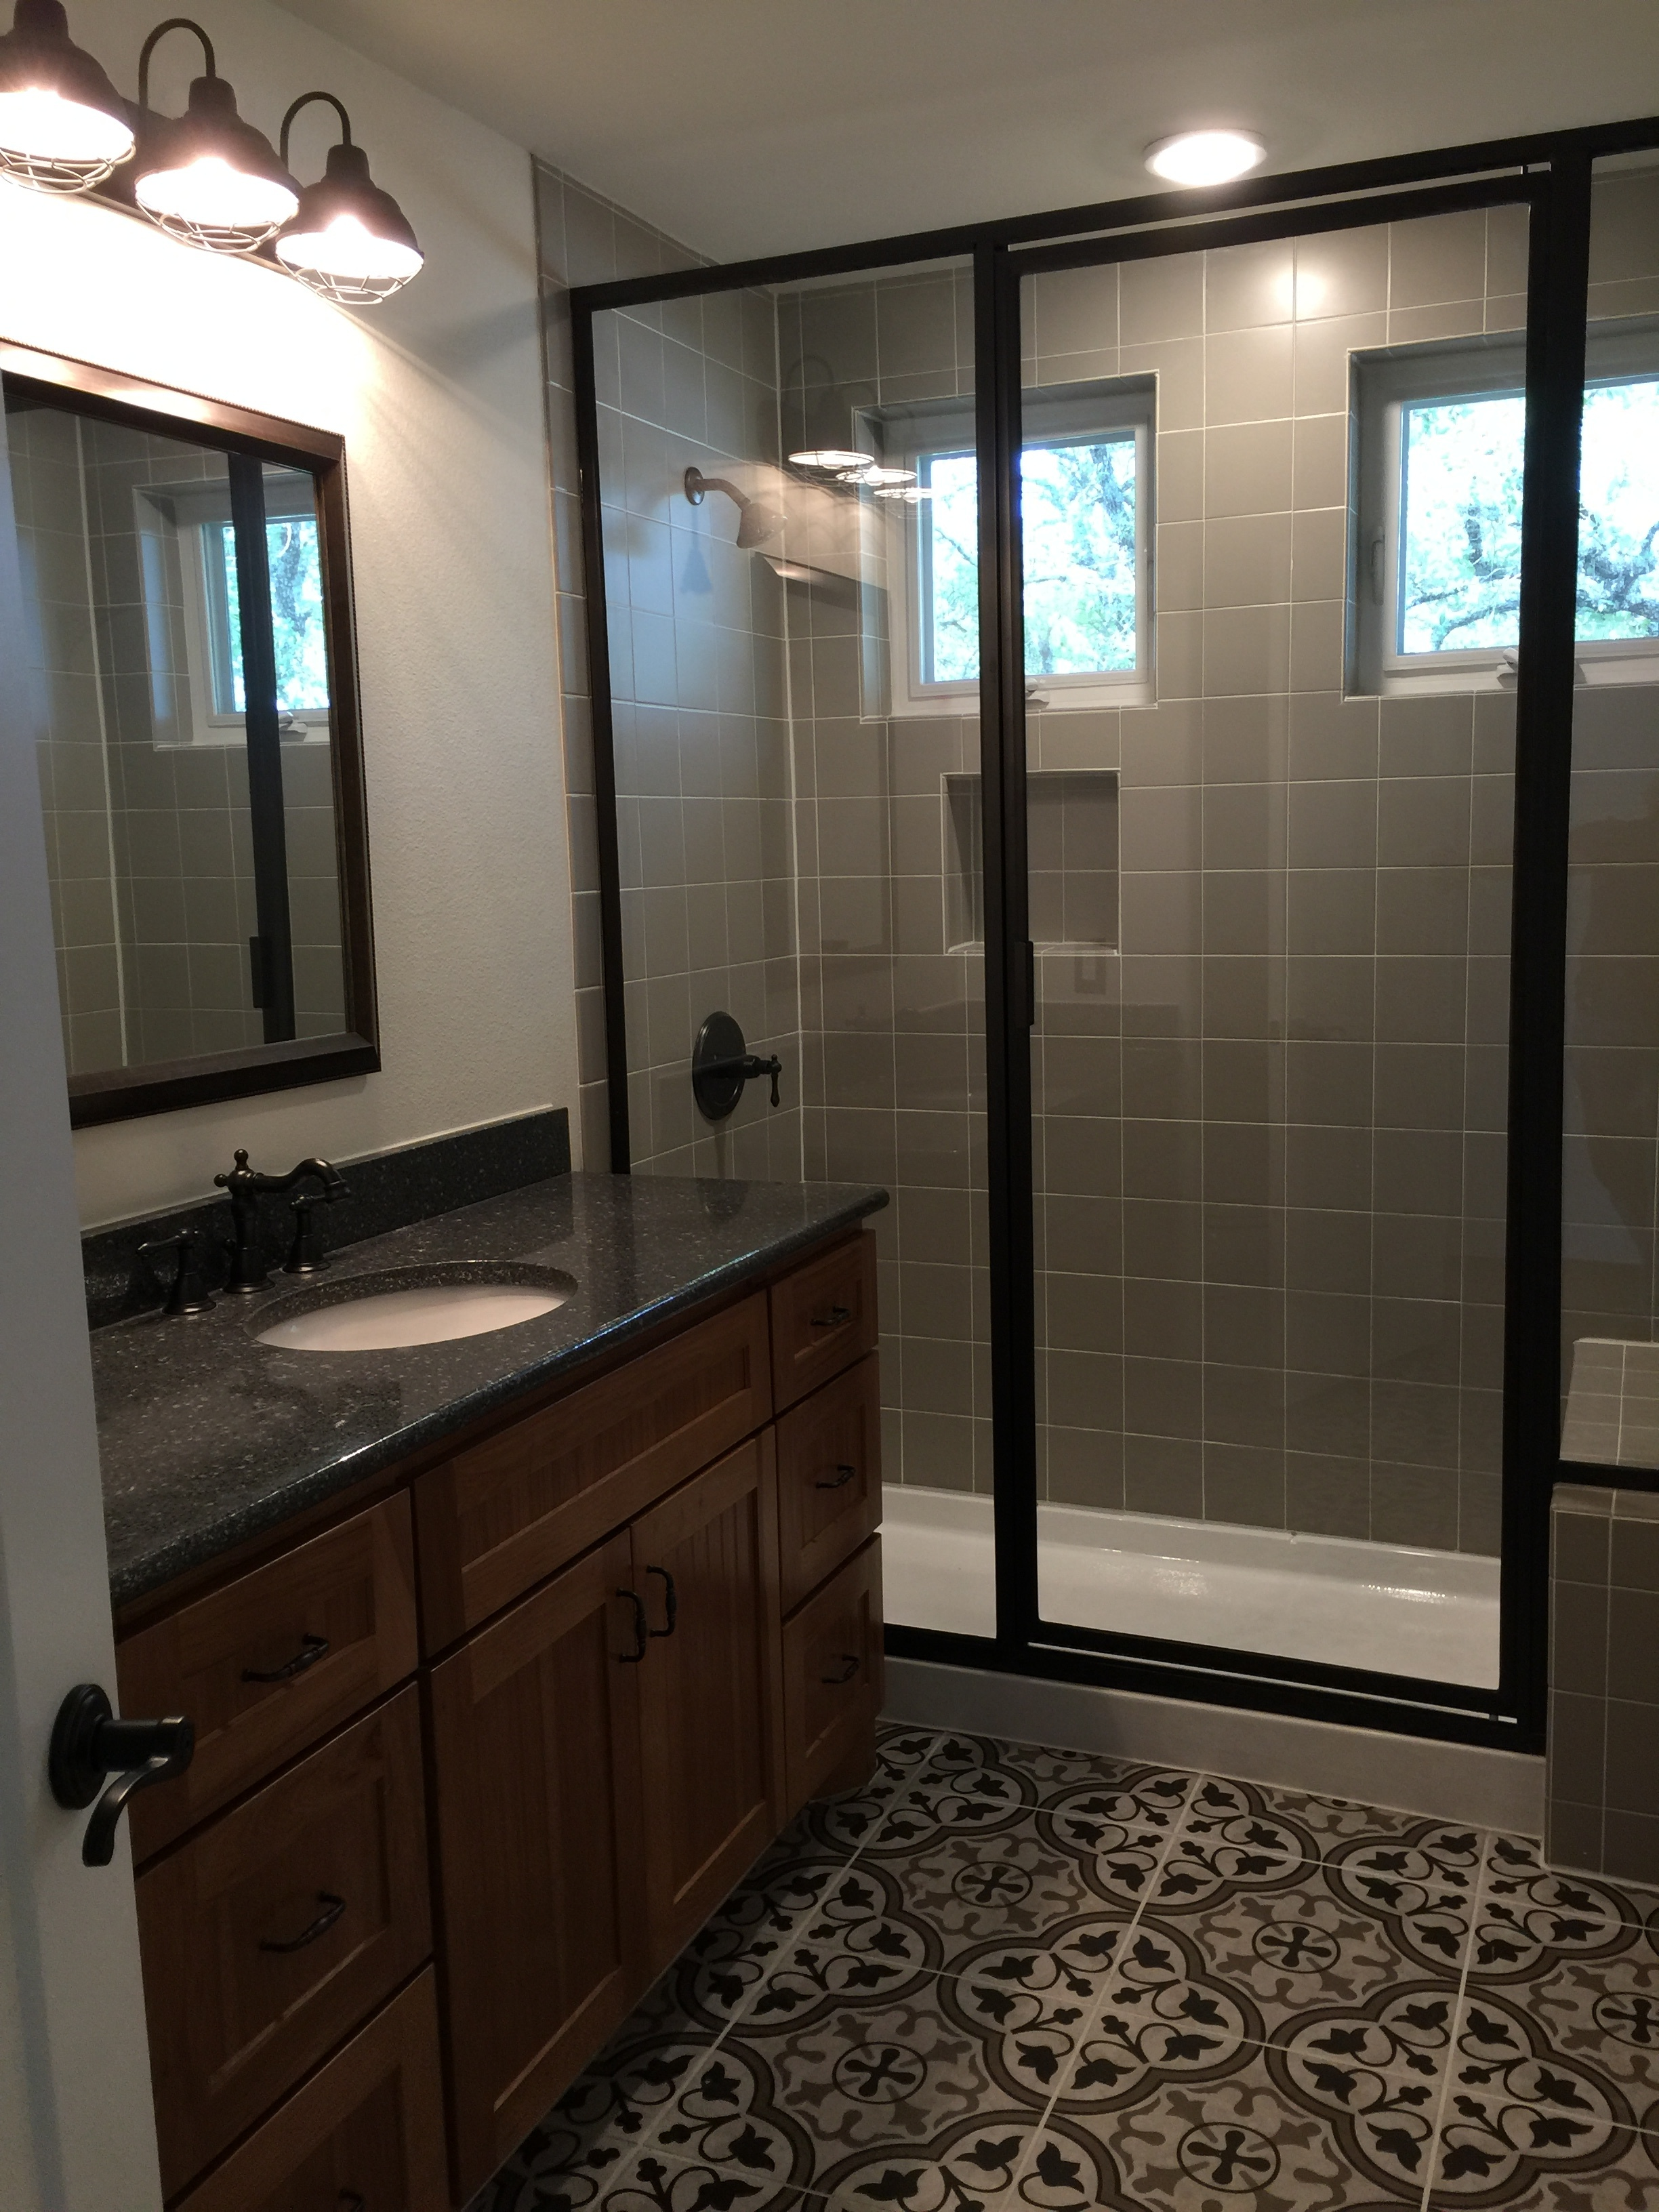 910 PLL - Finished Hall bath 2.JPG